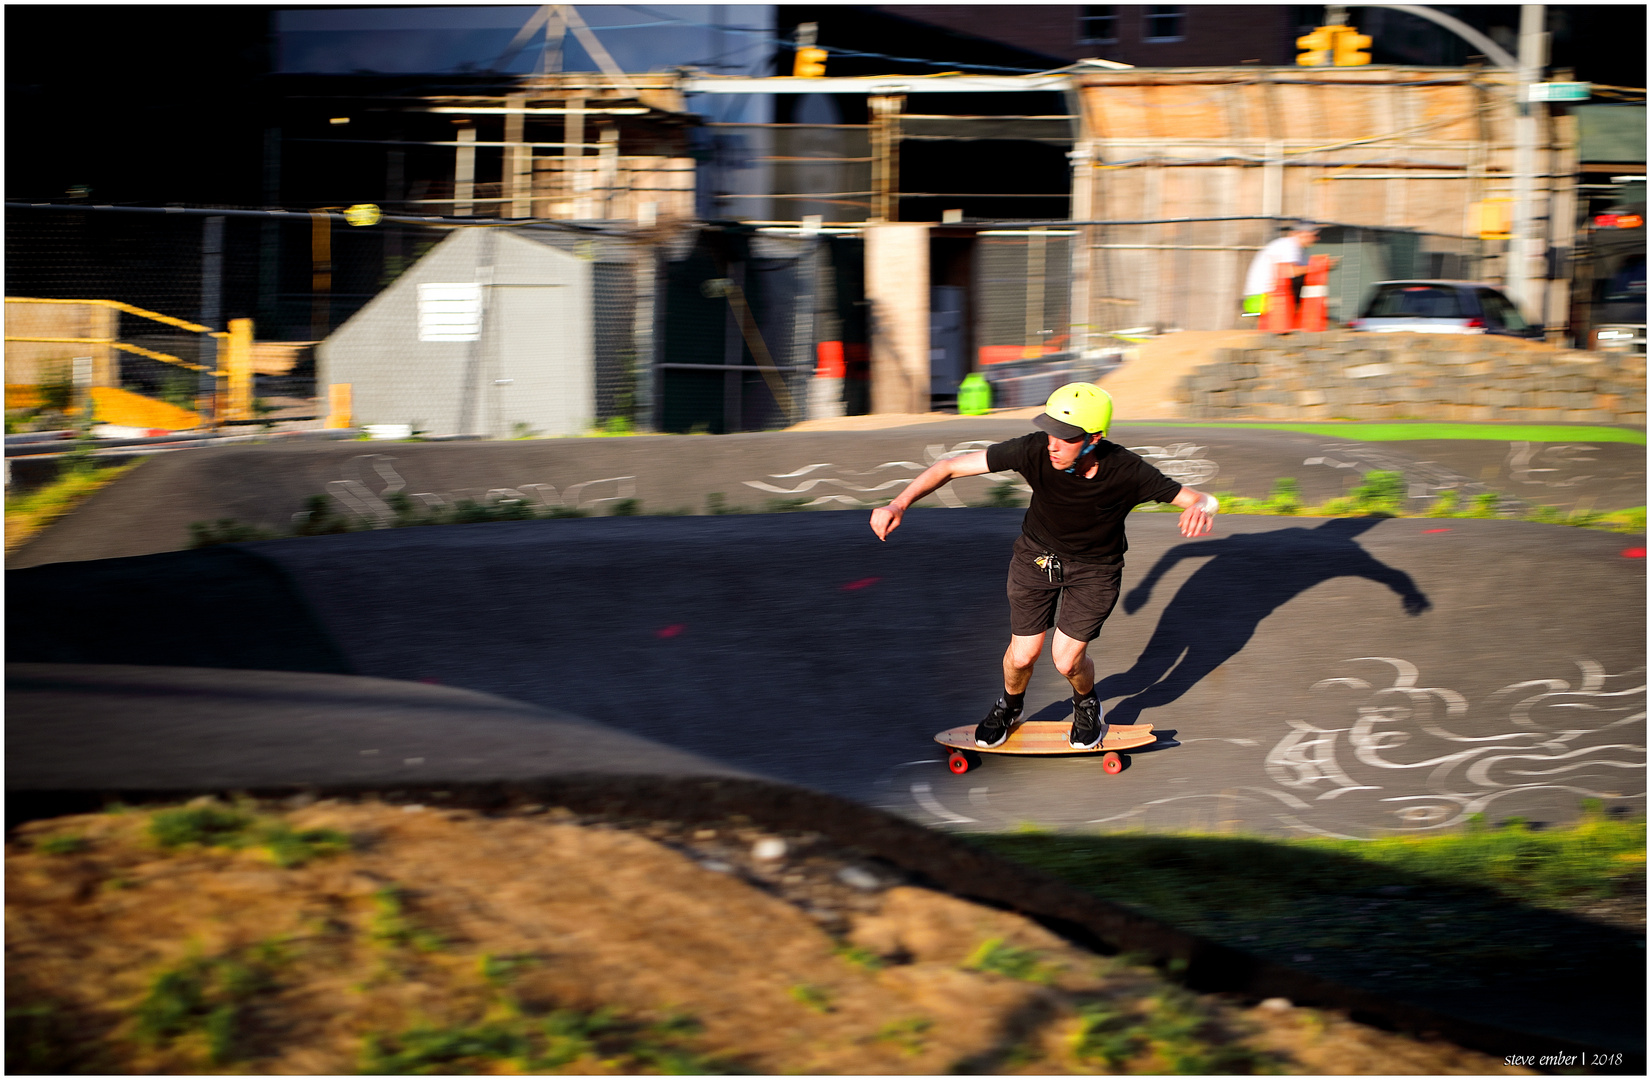 Skateboarder - Brooklyn Bike Park